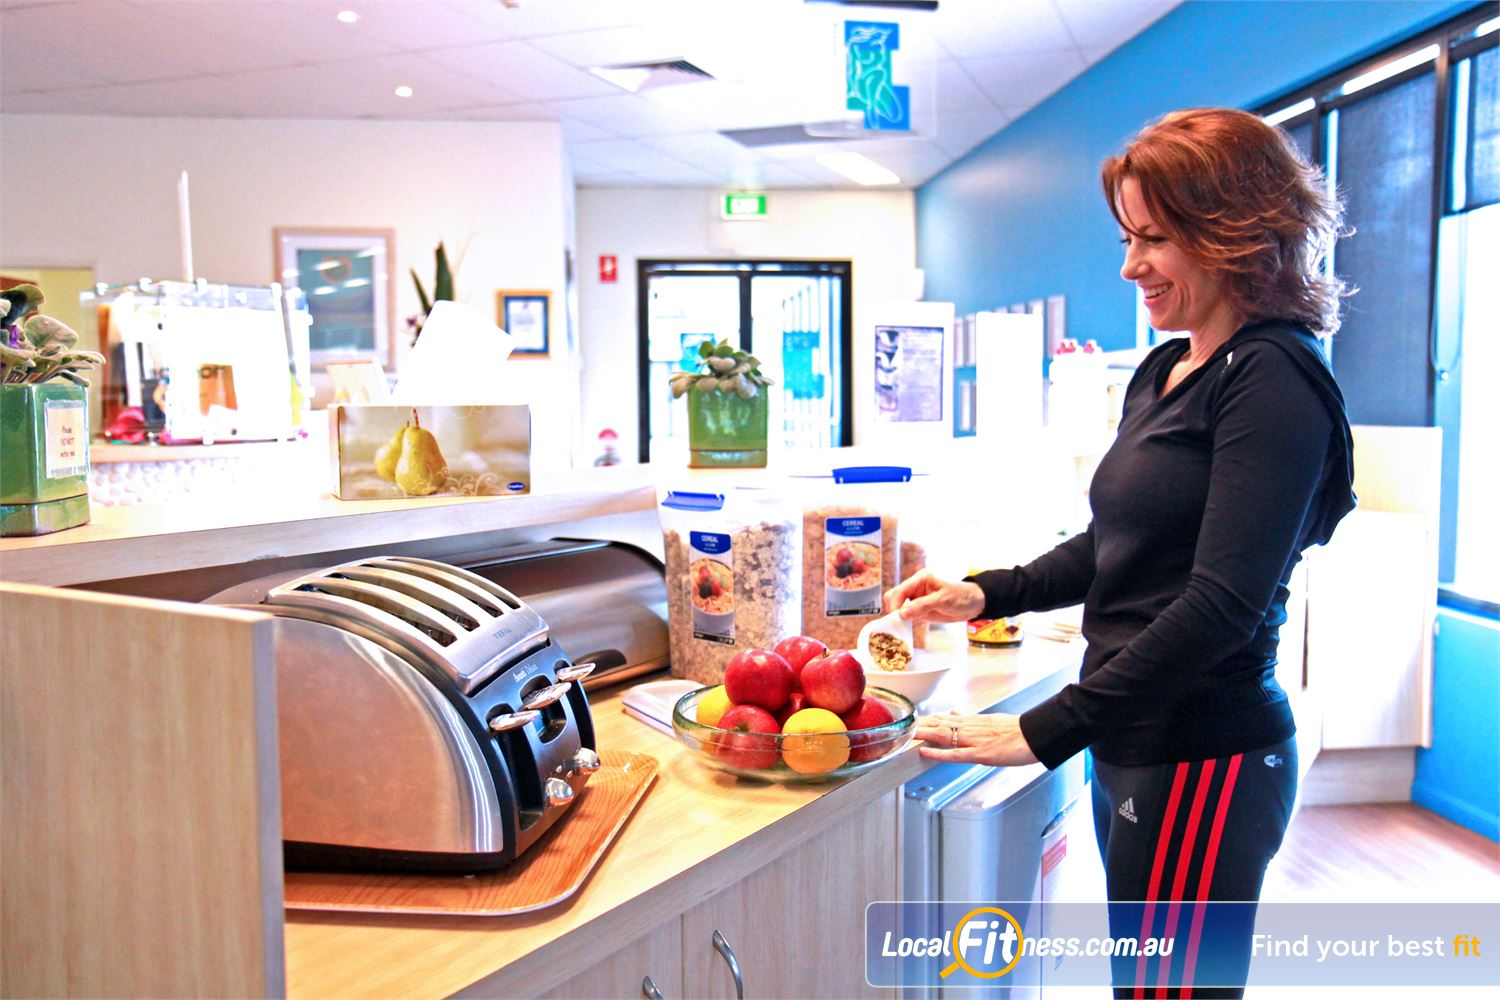 Fernwood Fitness Petrie First-class service with complimentary breakfast, tea and coffee.